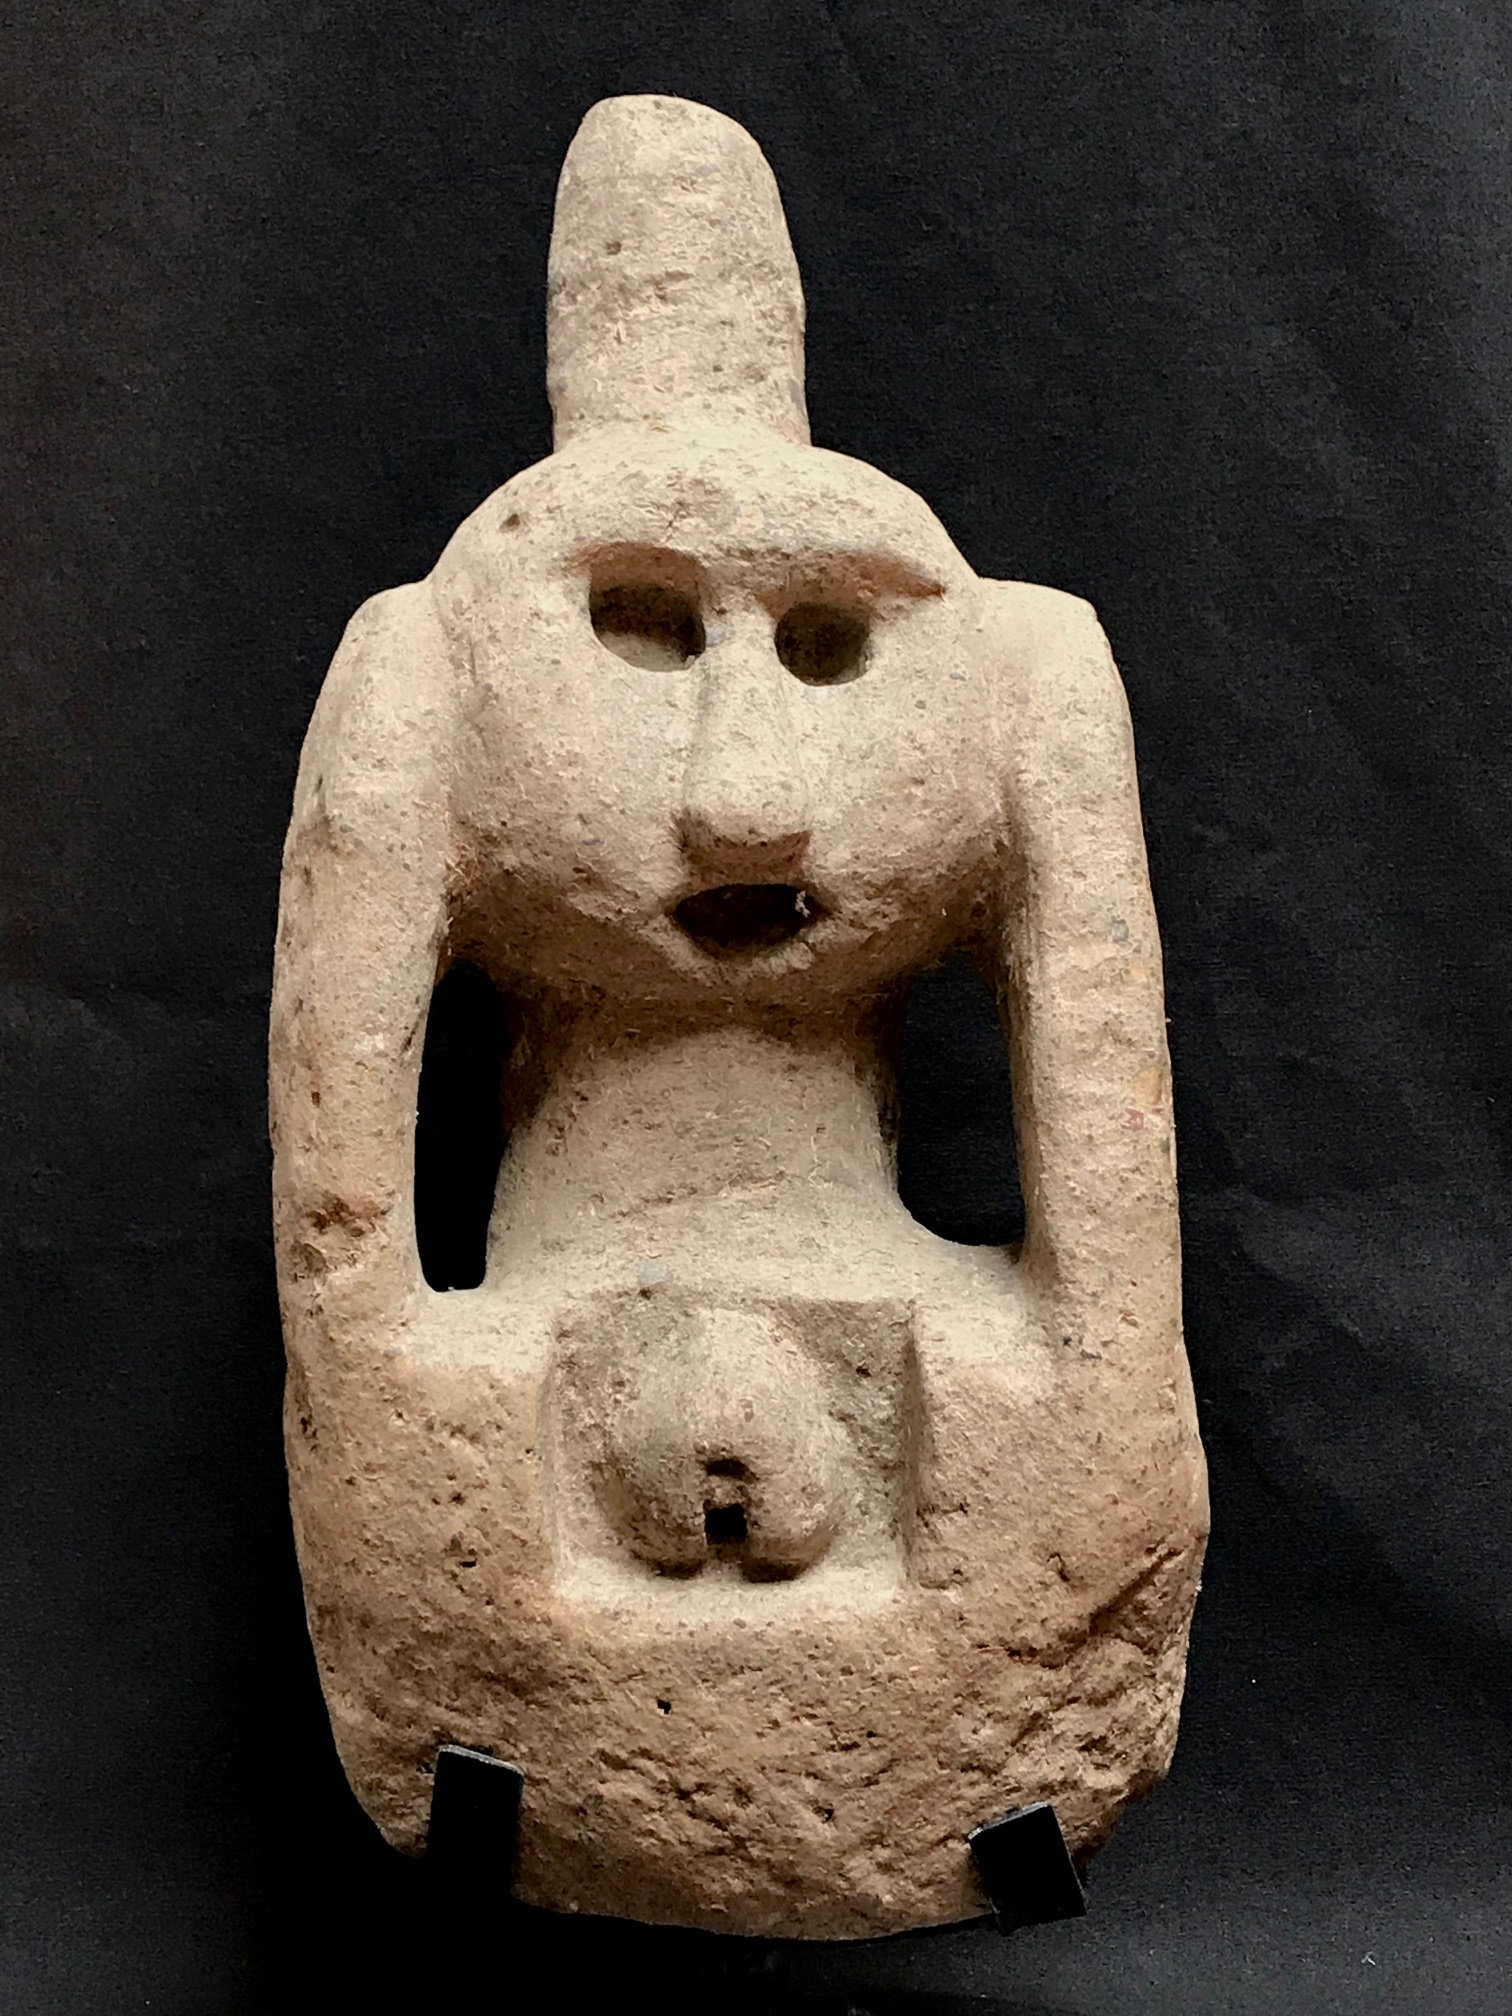 "Female Magic Figure, Shaman uses this for prayer and to gather healing power to treat people. Kodi village, West Sumba, Indonesia, early to mid 20th c., stone, 14 1/2"" x 7"" x 6 1/2"" without base (16 1/2"" with base),"